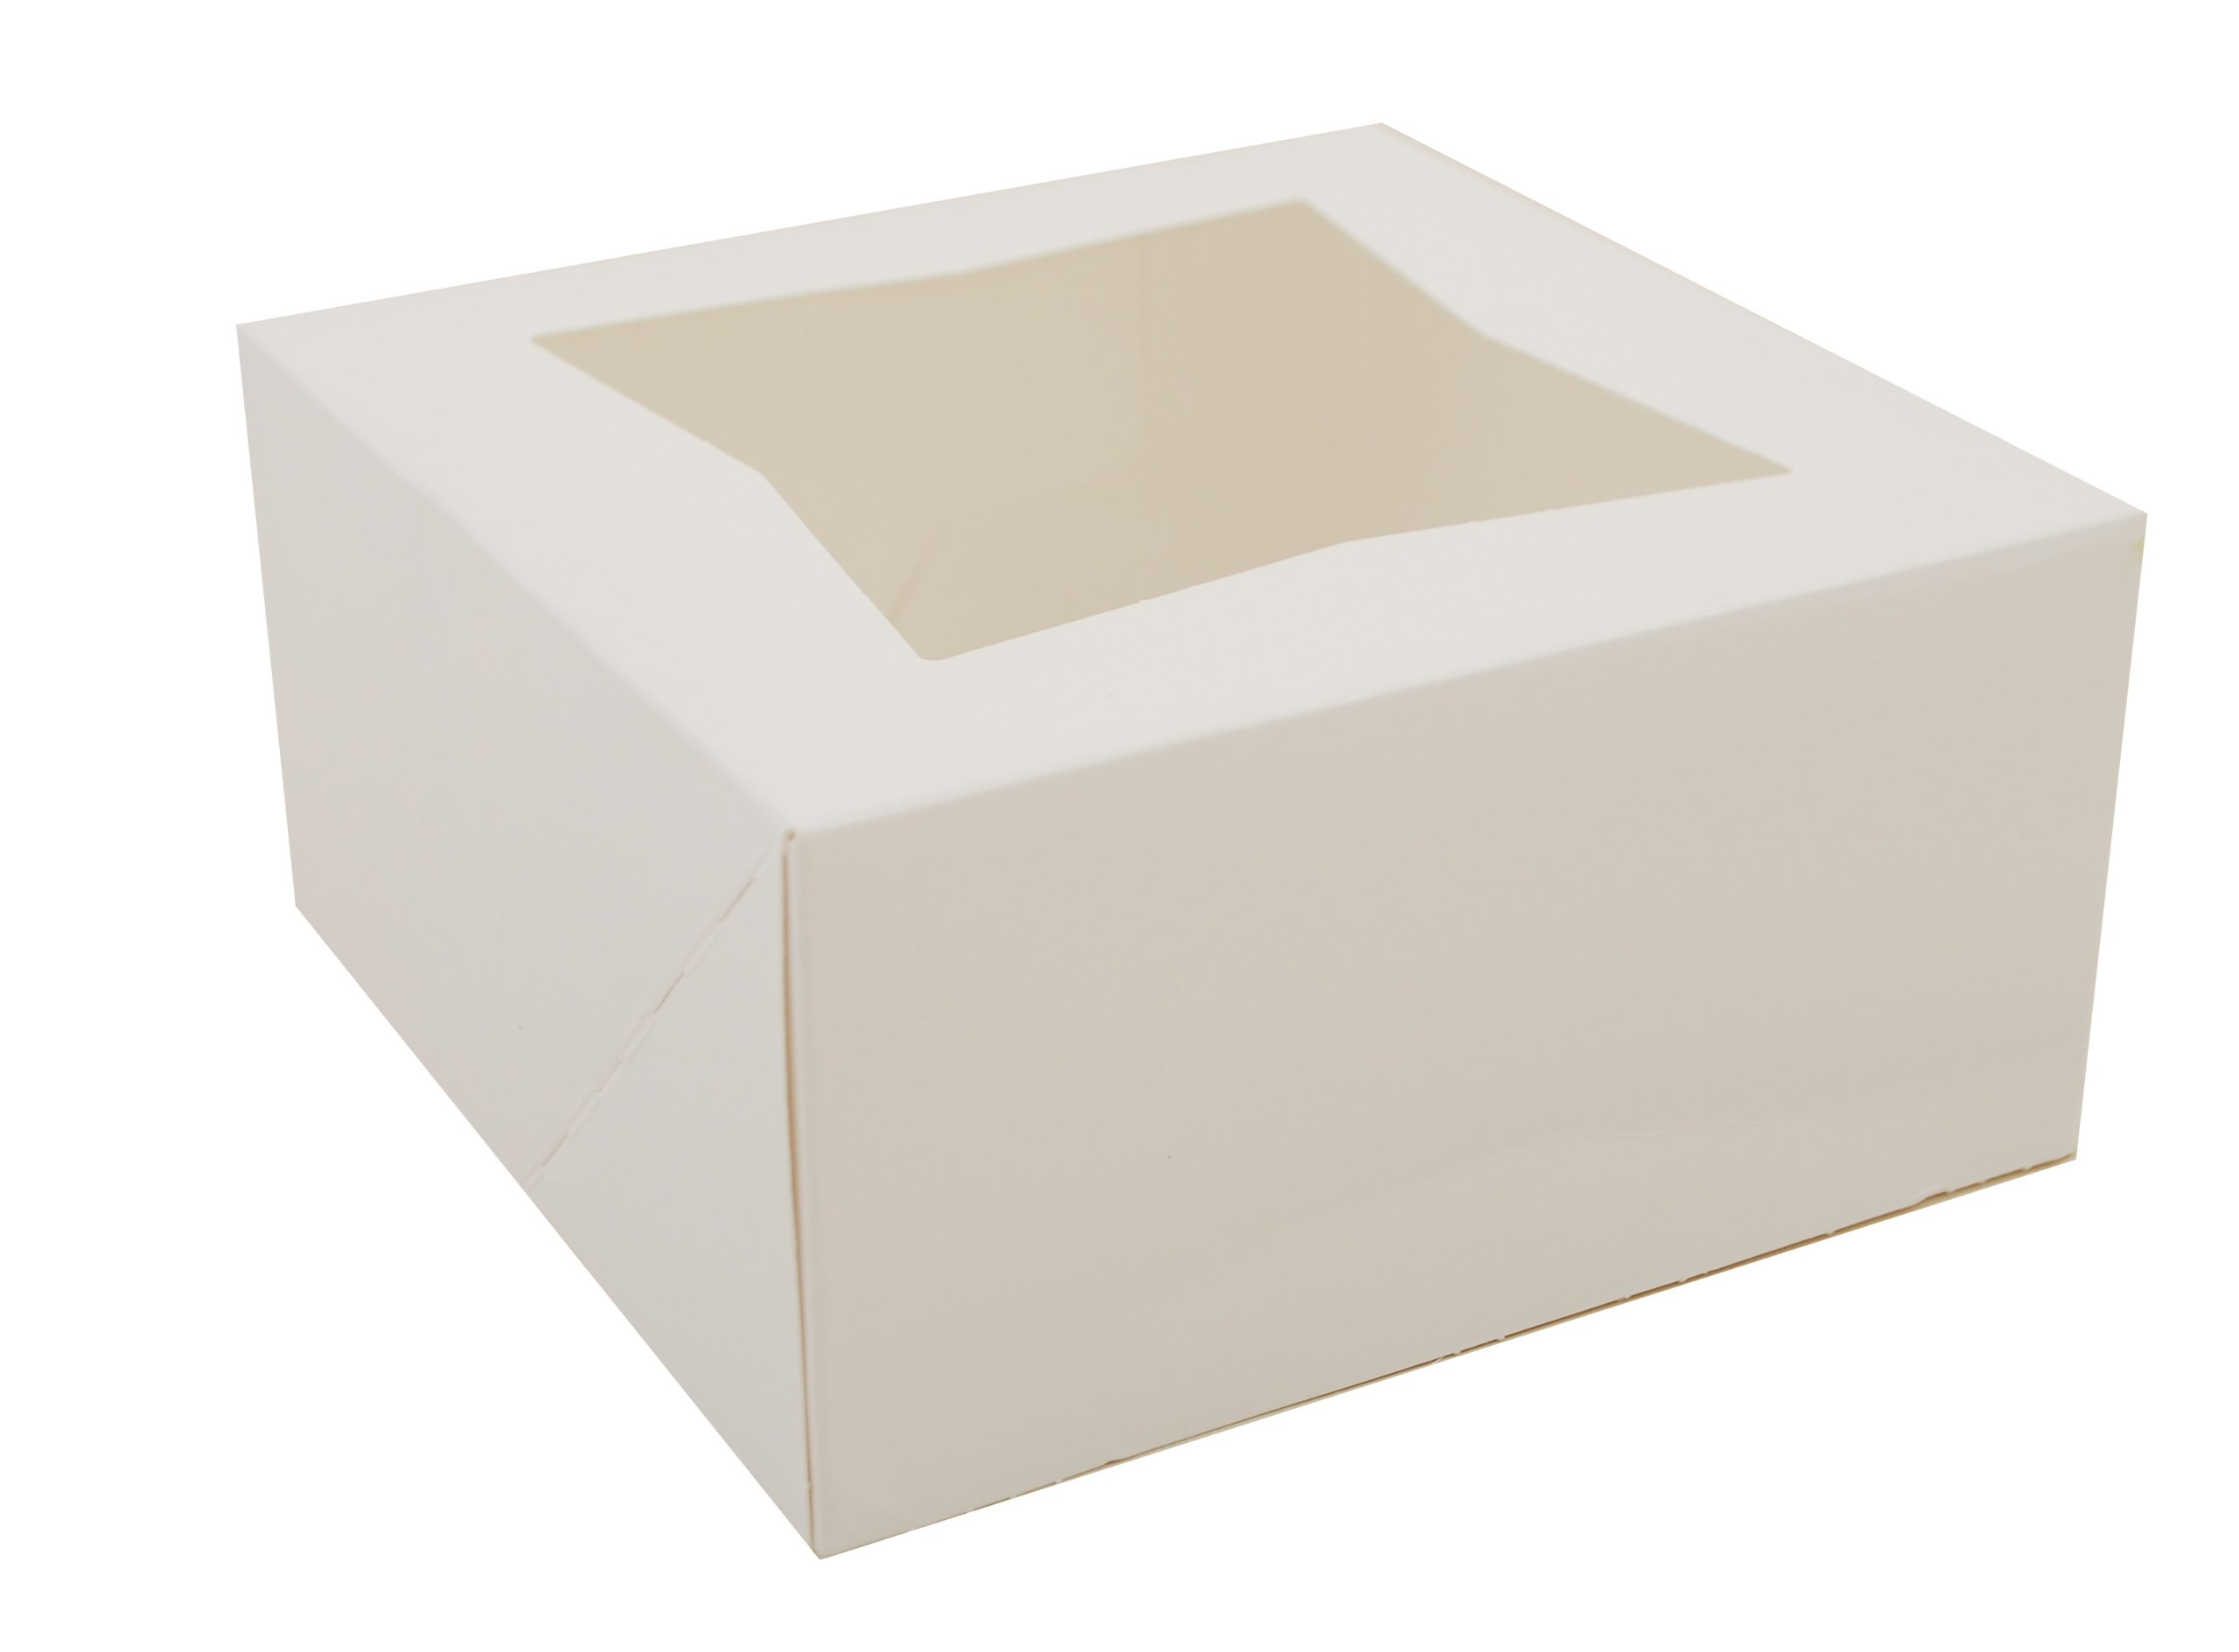 Southern Champion Tray 24023 Paperboard White Window Bakery Box, 6'' Length x 6'' Width x 3'' Height (Case of 200)